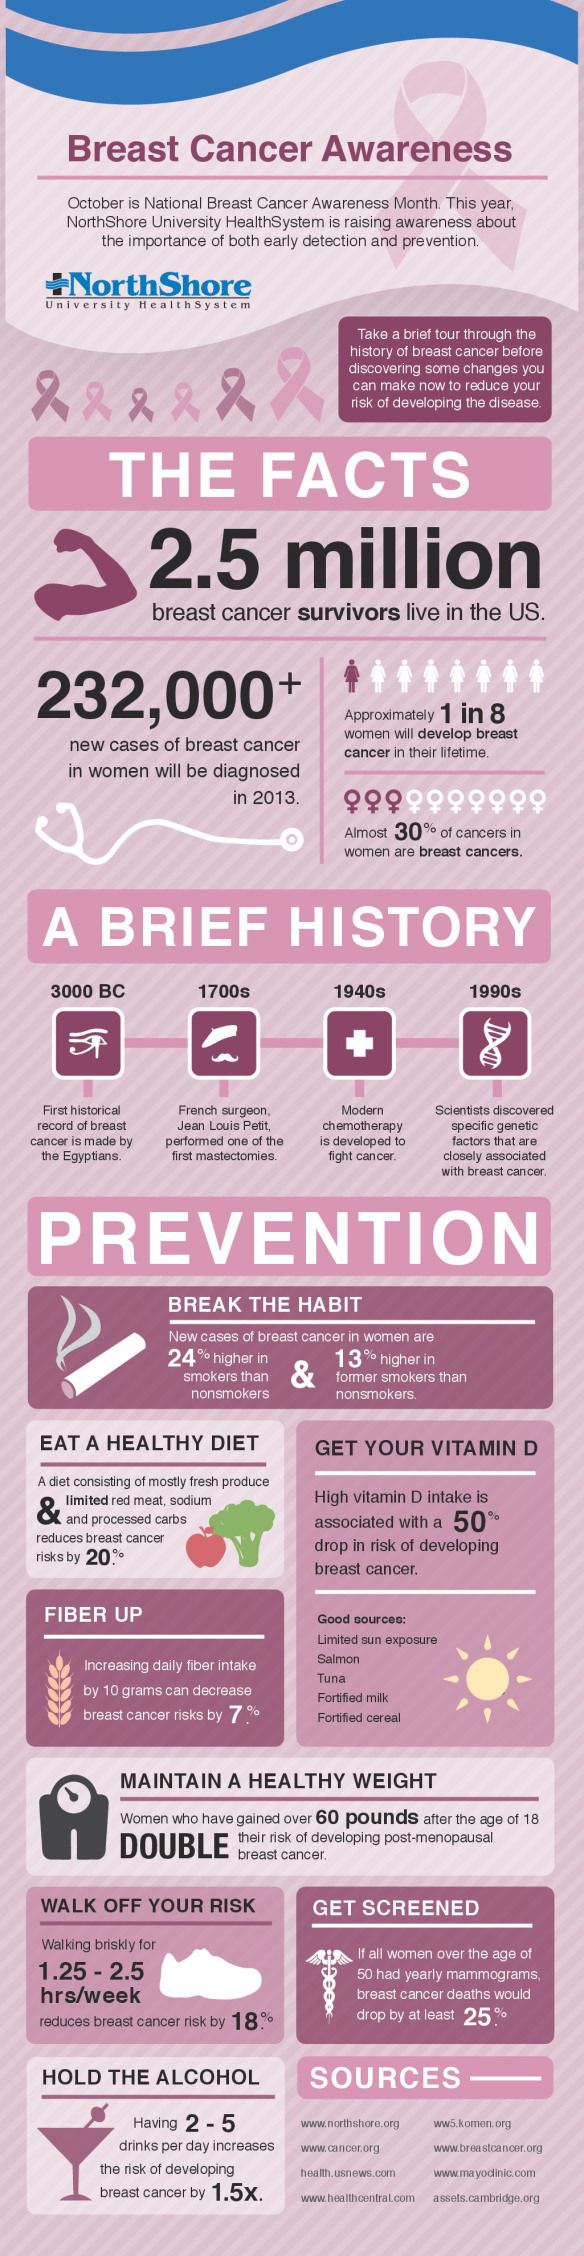 think-pink-breast-cancer-history-risk-factors-and-prevention_52654578c1c5b